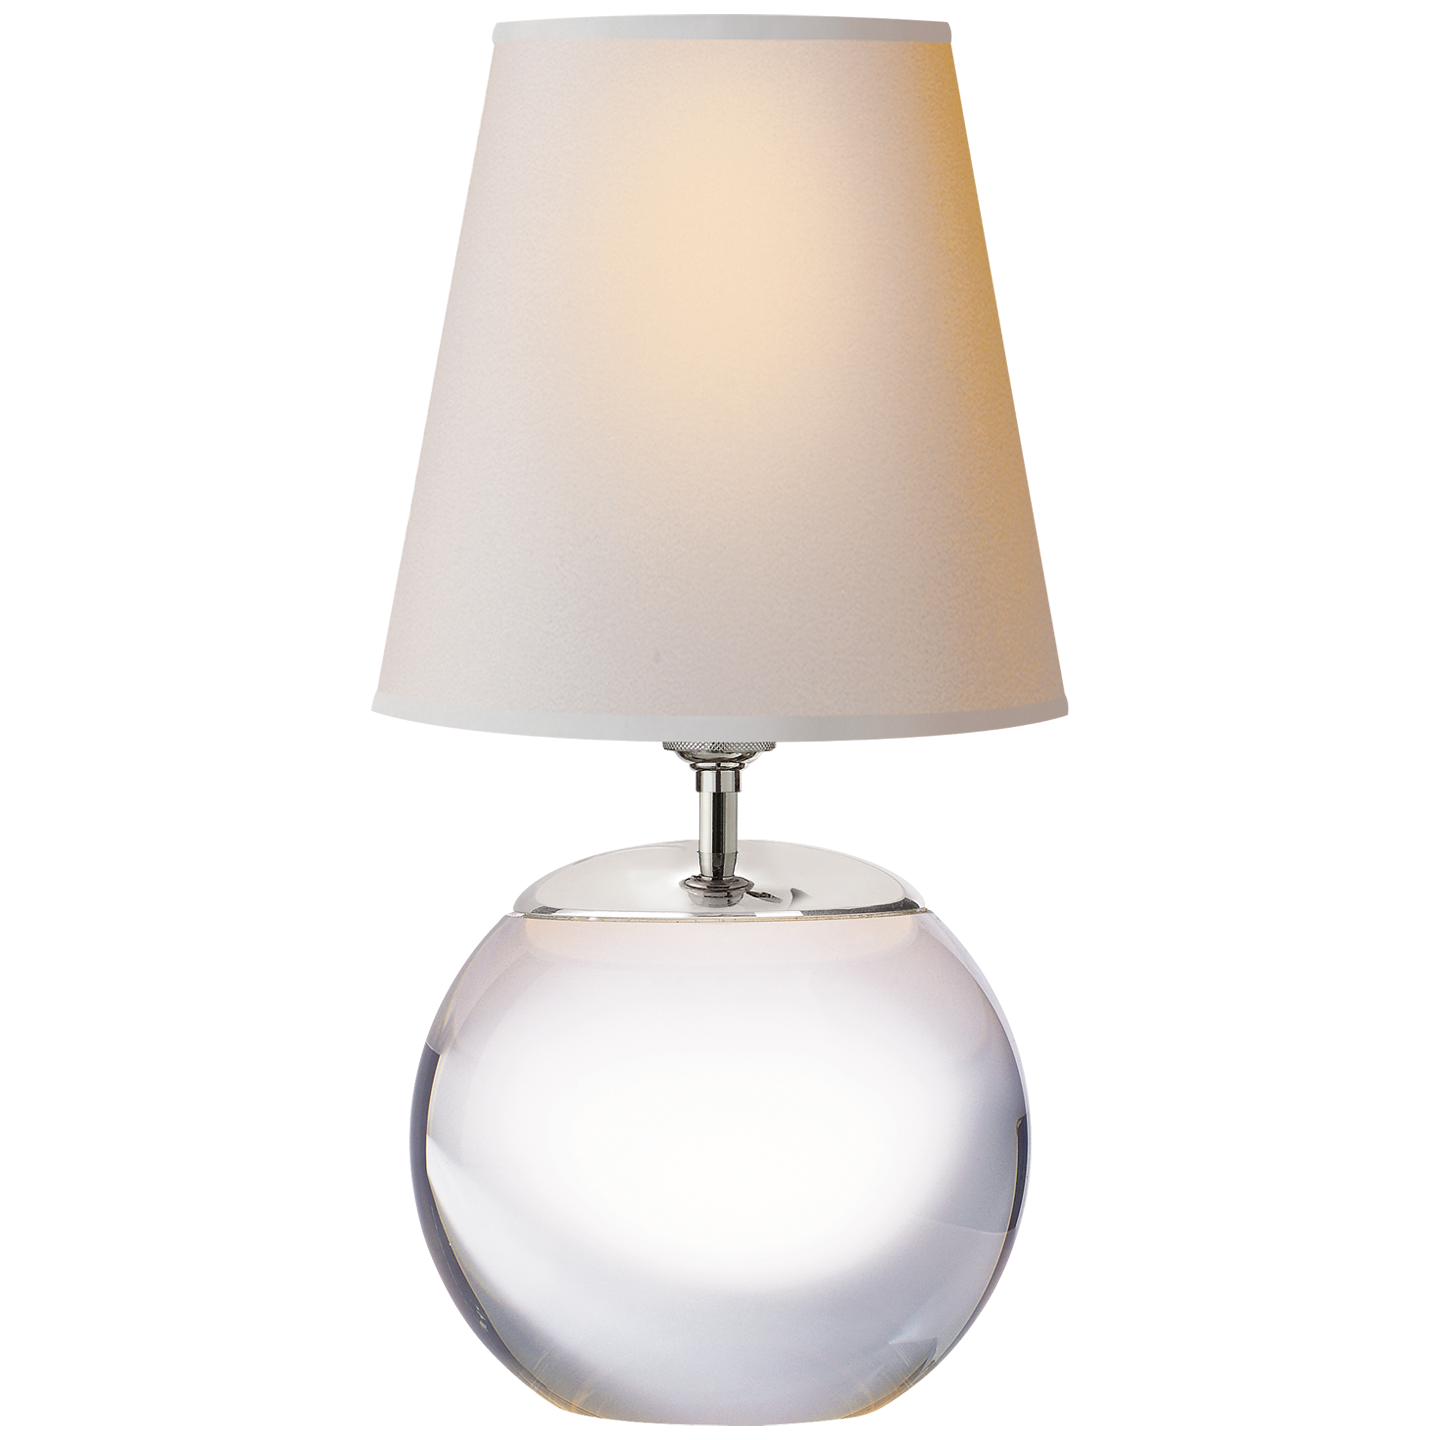 Small Crystal Table Lamp By English Country Home Table Lamp Lamp Accent Lamp